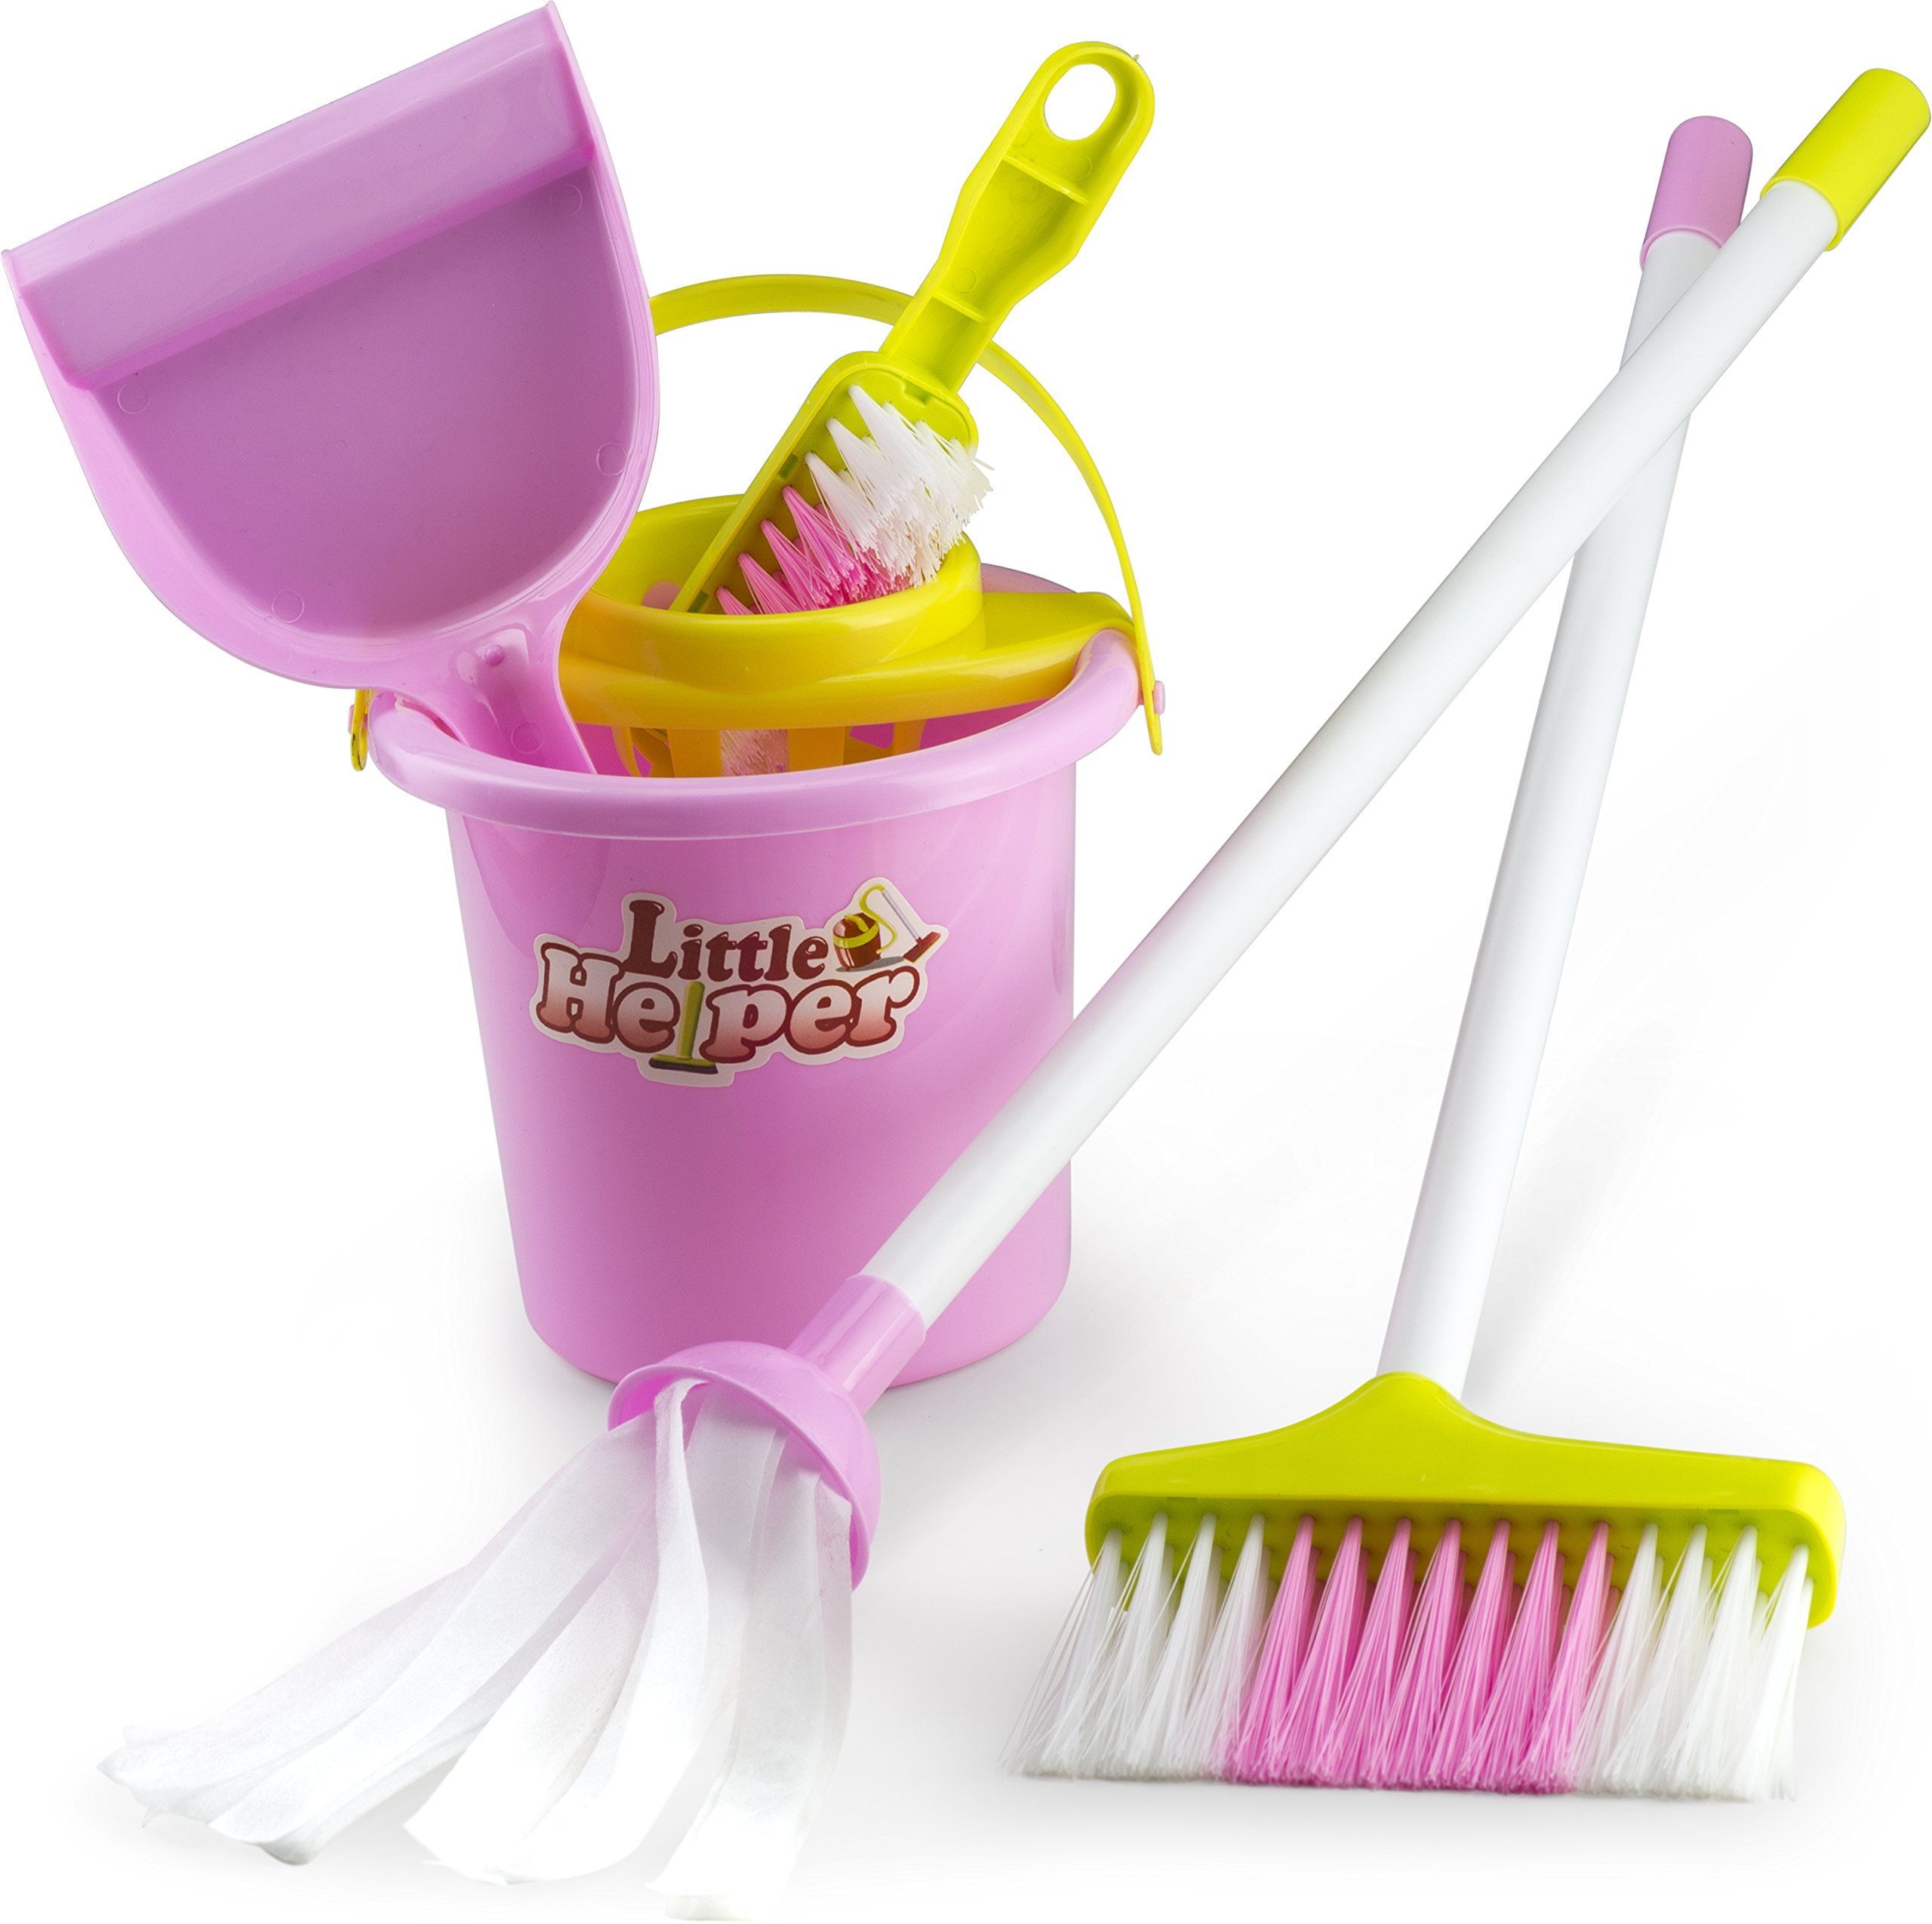 Housekeeping & Cleaning Playset – Mini Clean Up Broom, Mop and Bucket set Kids with Other Play Pretend Toys – Perfect Gift for Ages 3 & Up